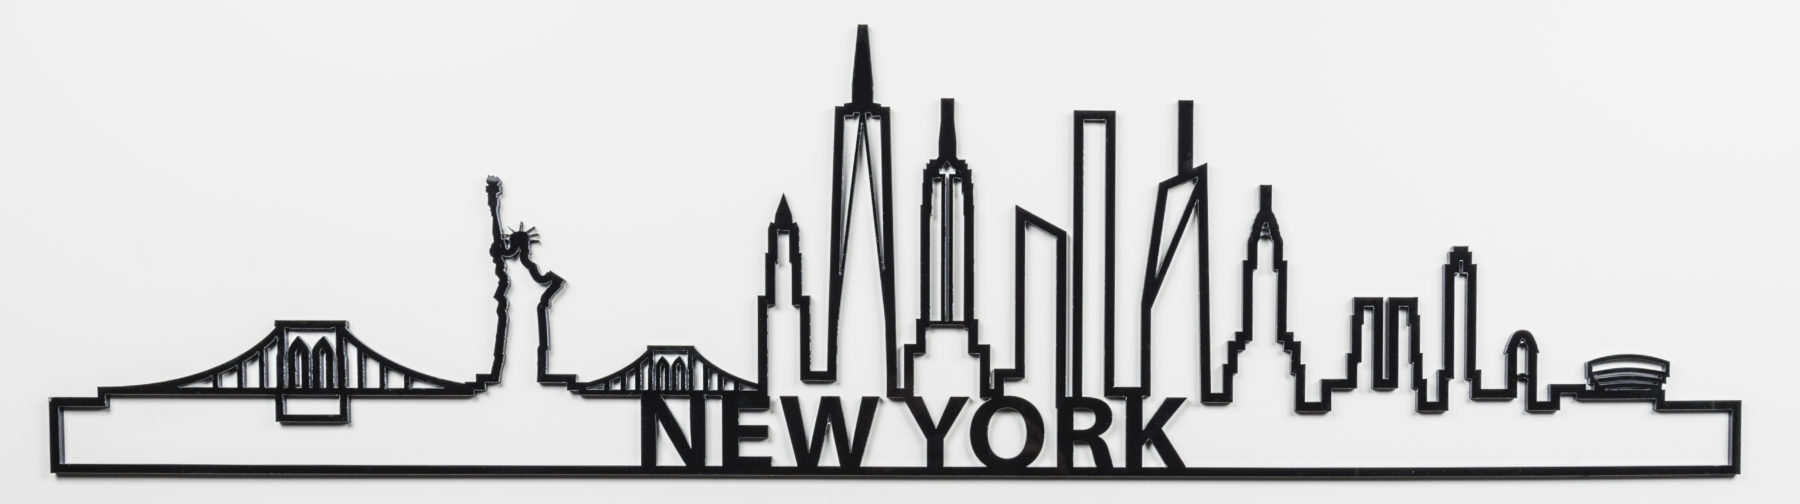 1800x504 Skyline New York Skyline New York Backgrounds